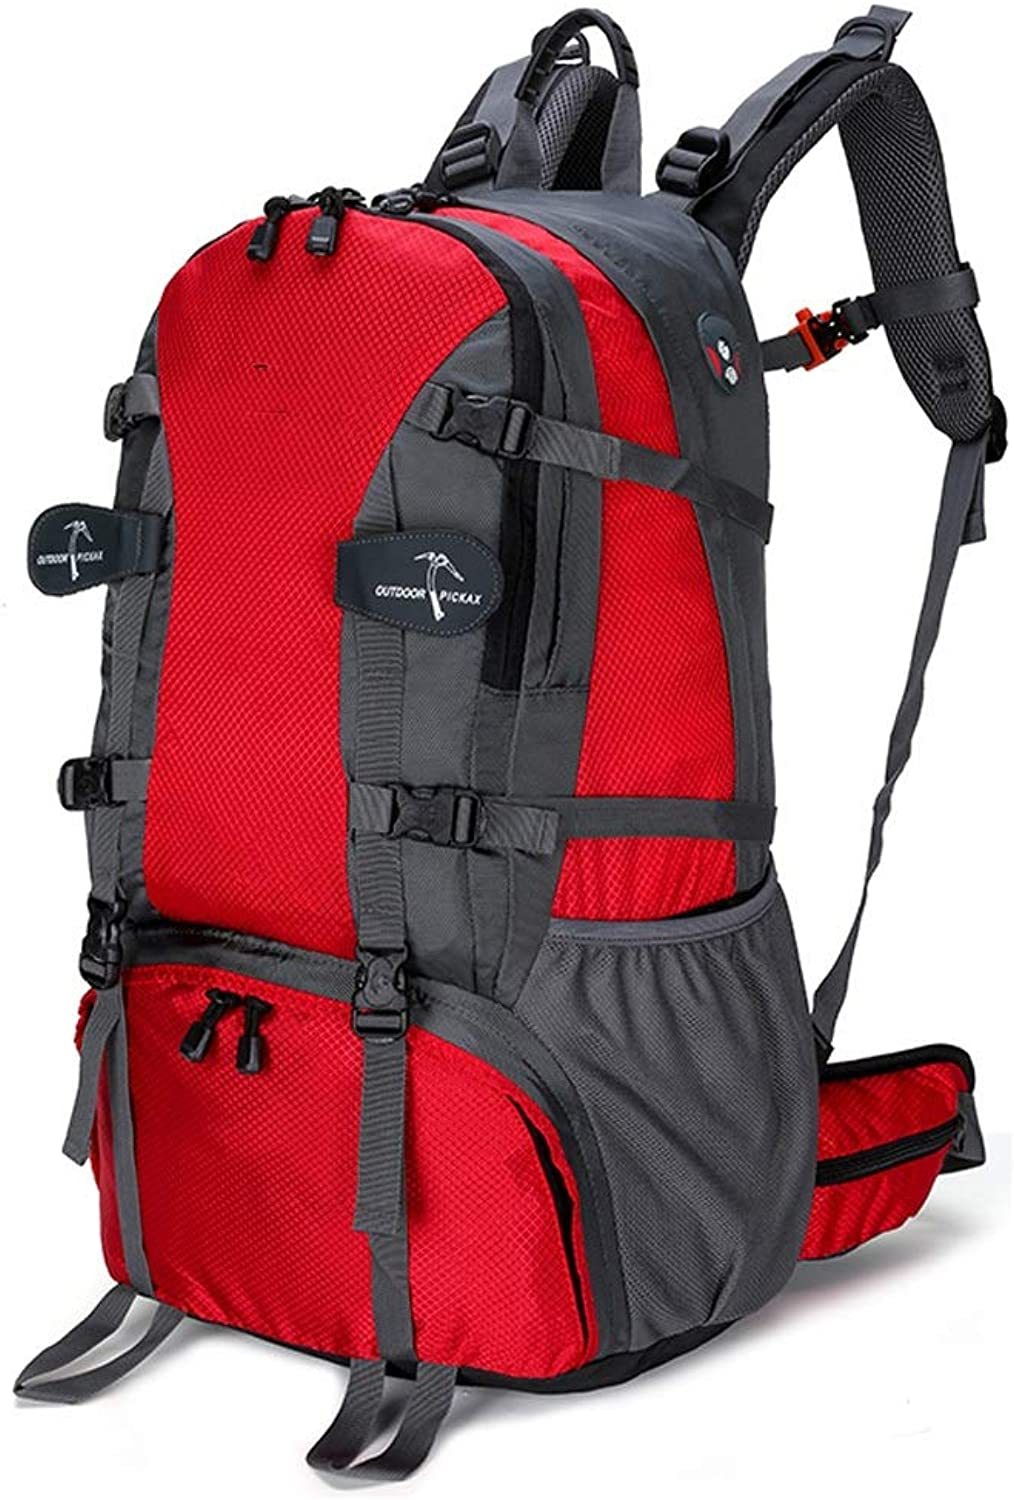 LLSDLS Outdoor Mountaineering Bag Knapsack Travel Rucksack Ultra Lightweight Packable Men and Women Waterproof Fashion Riding Daypack (red)